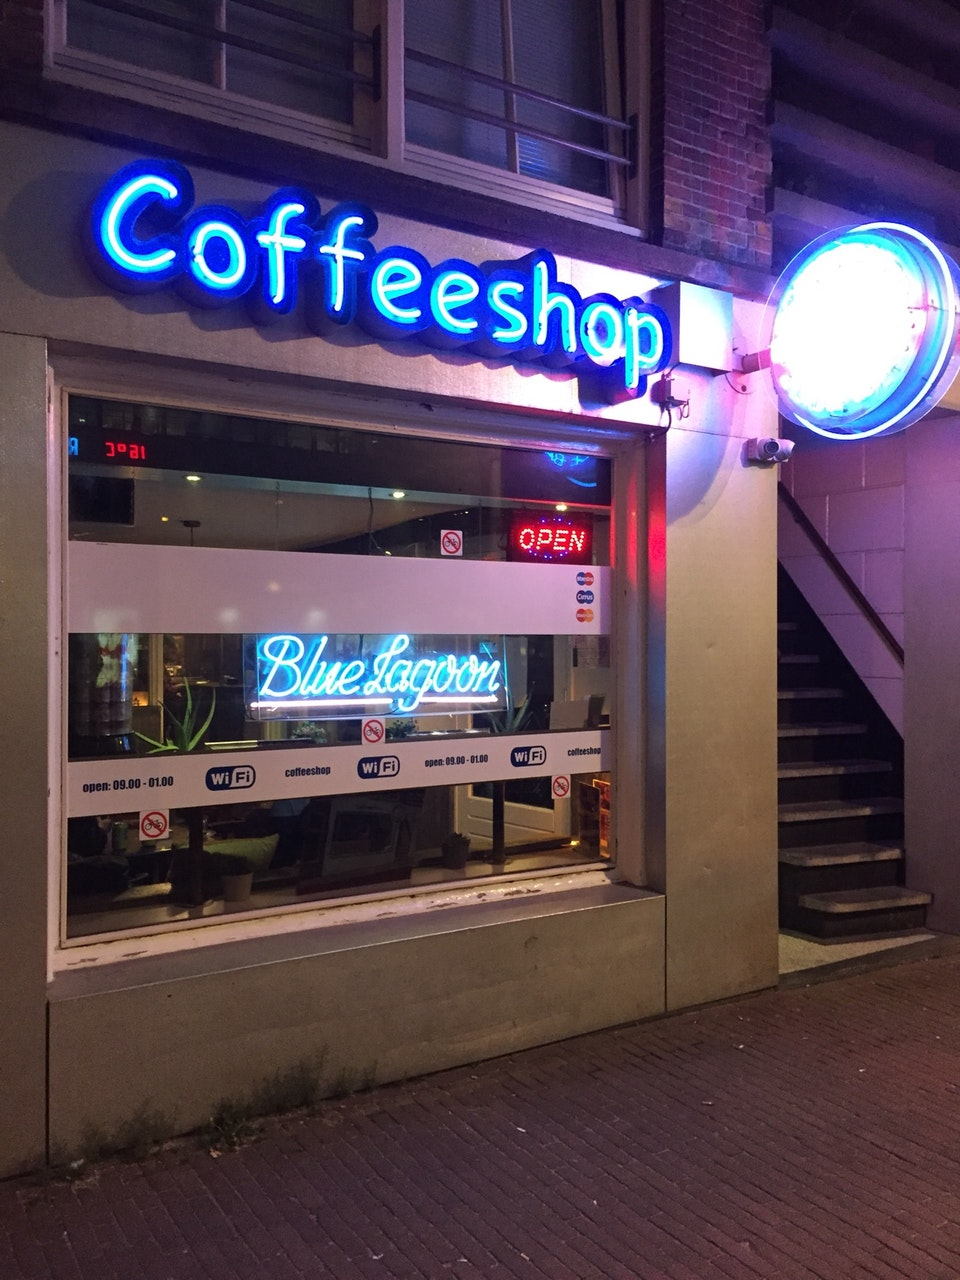 Blue Lagoon Coffeeshop Amsterdam - Weed Recommend